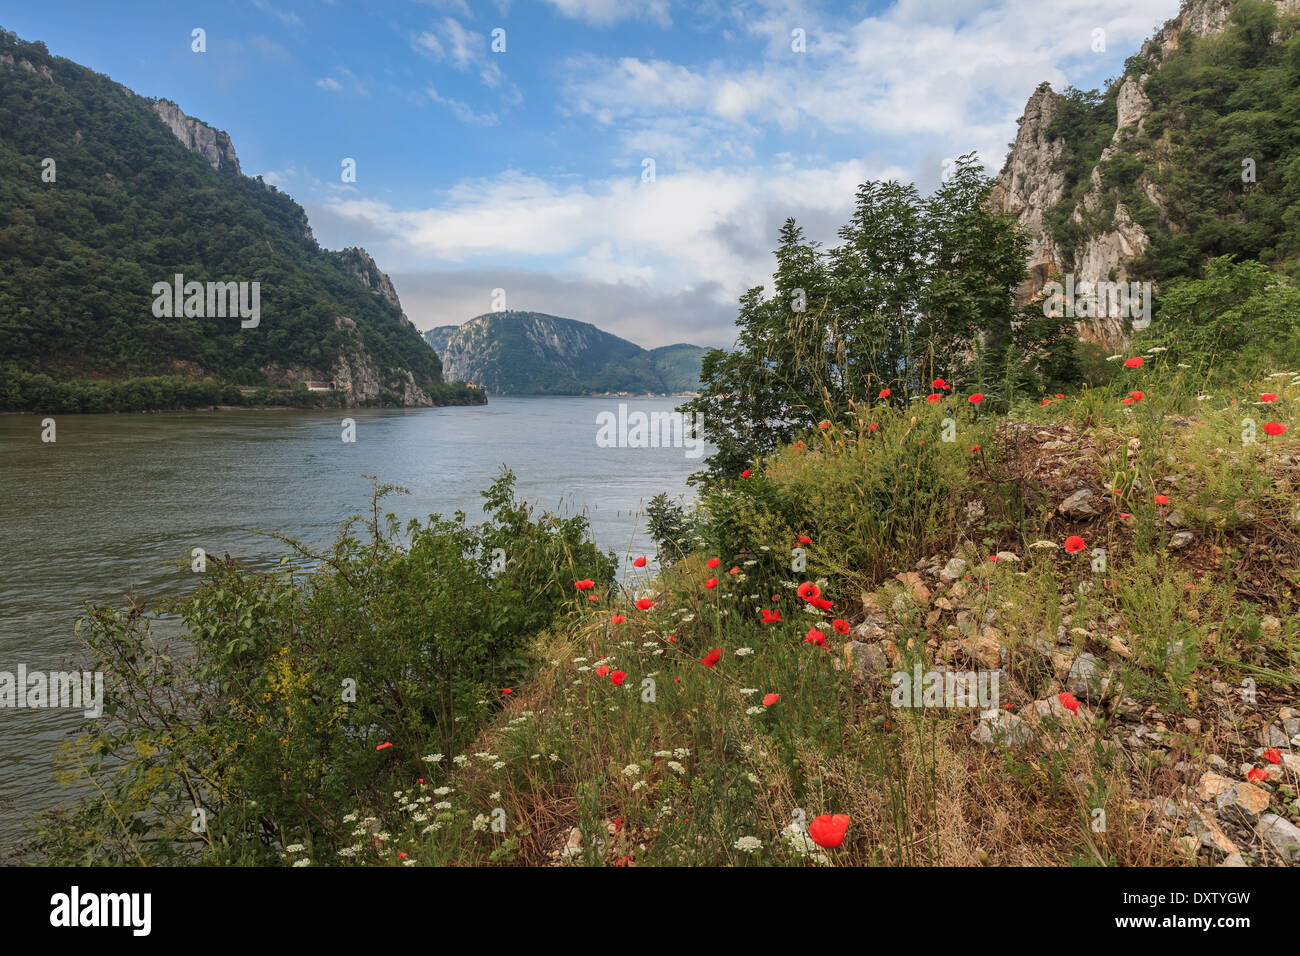 The Danube Gorges - Stock Image